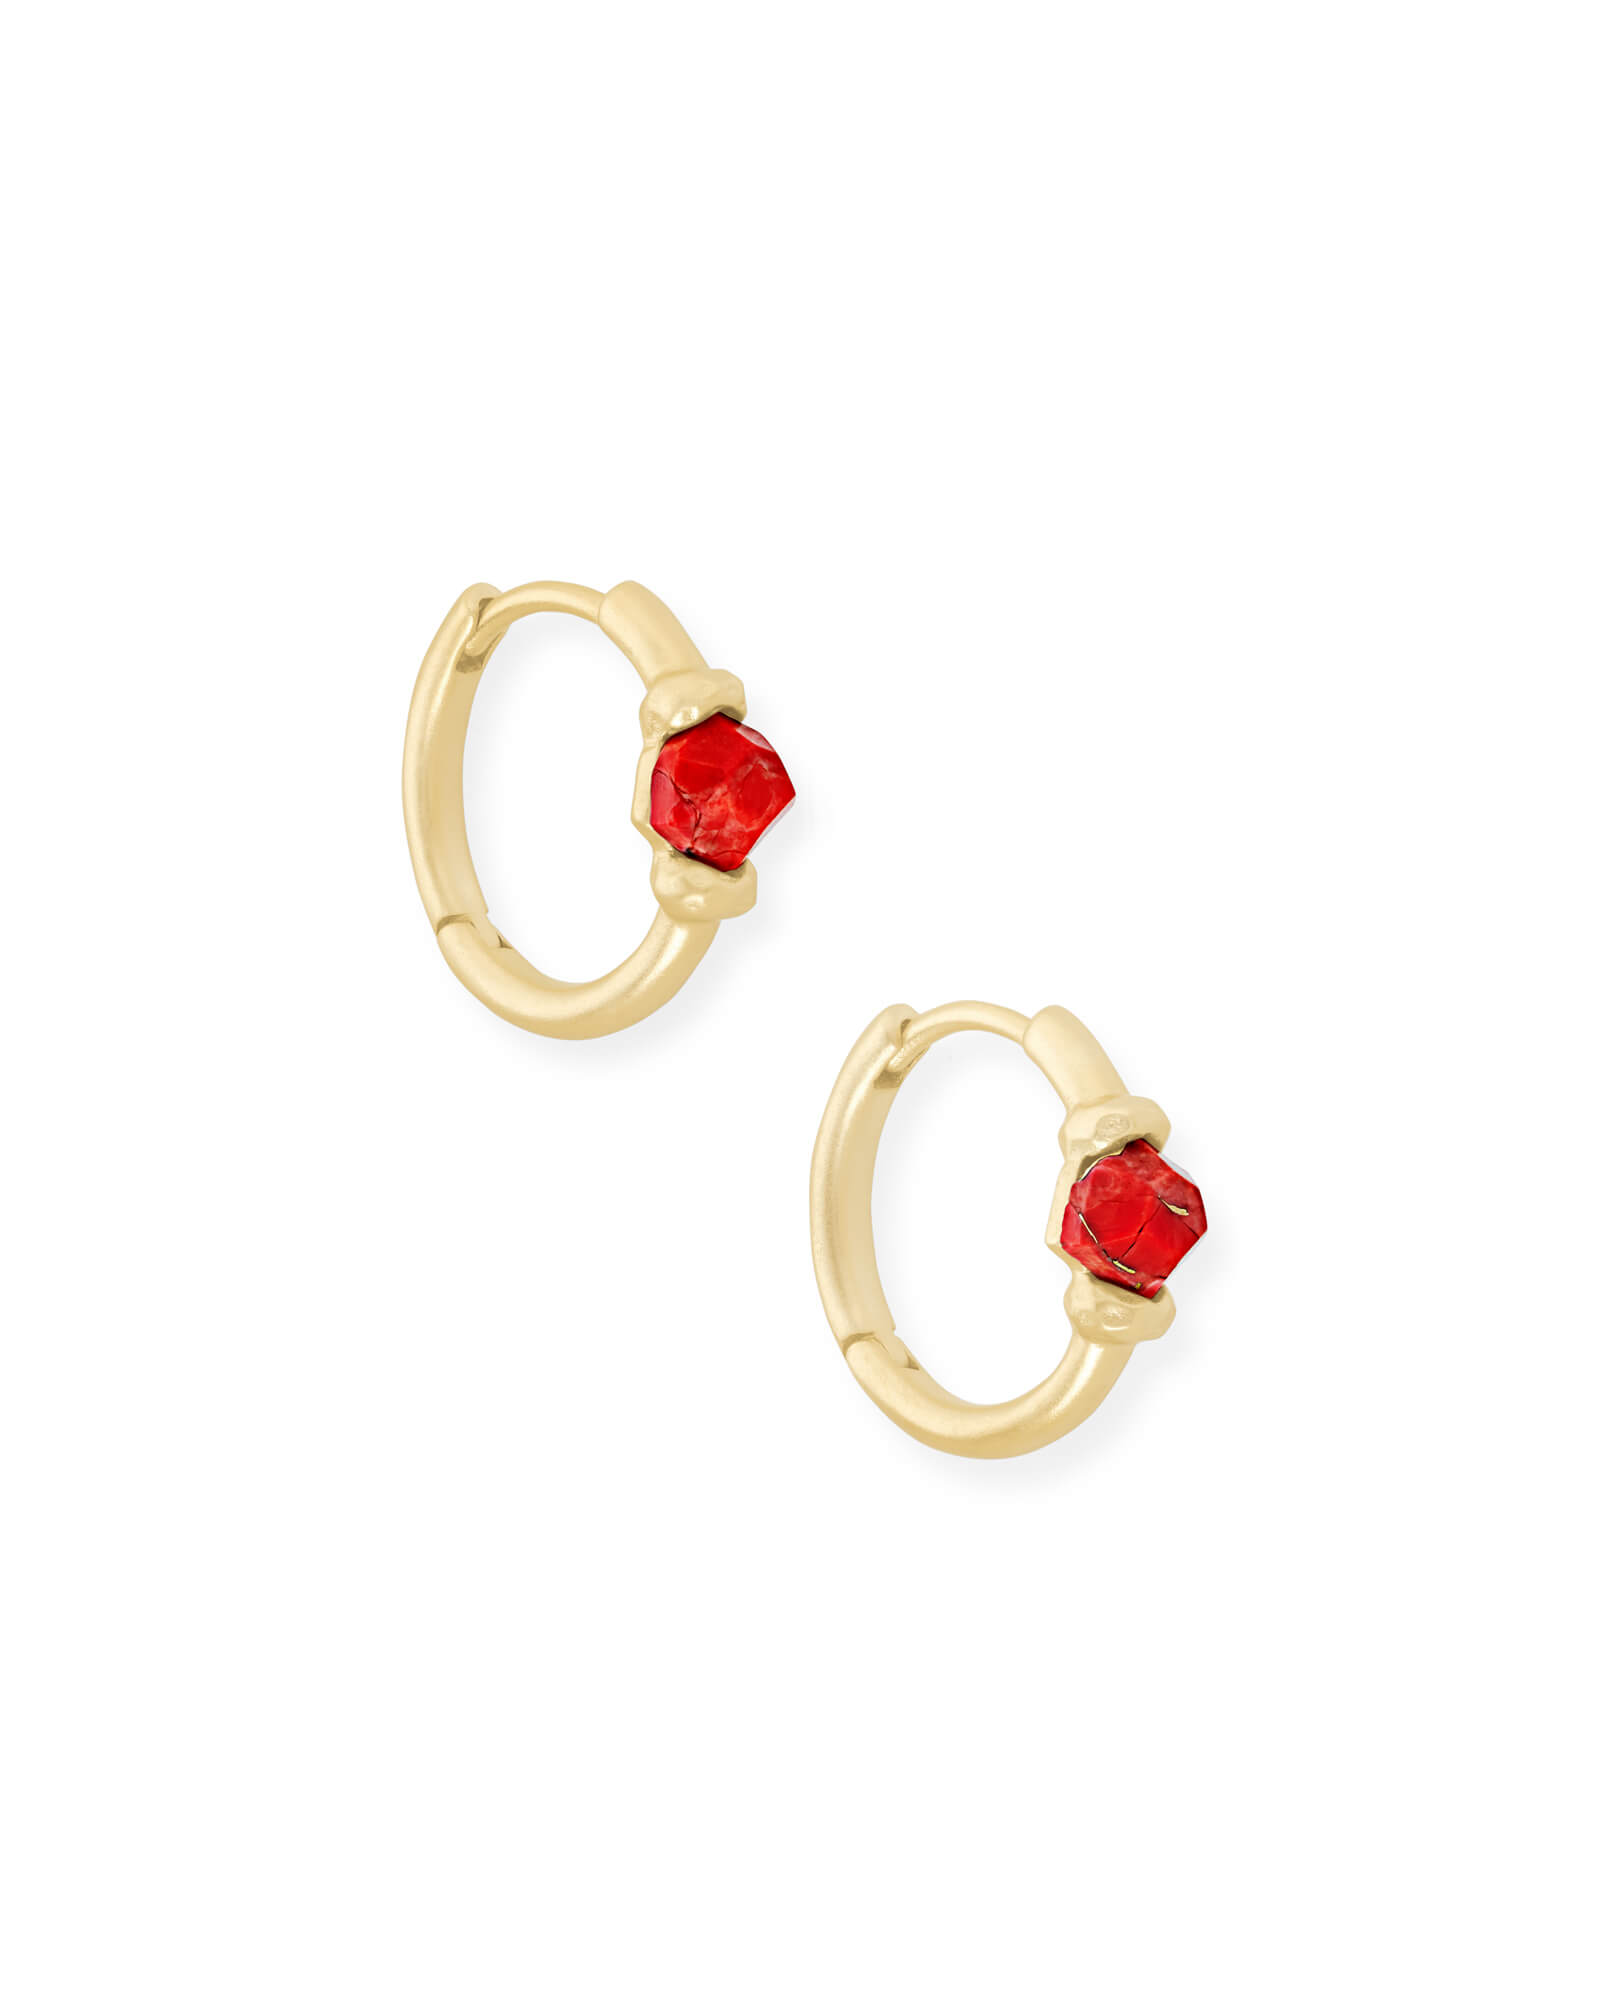 Ellms Gold Huggie Earrings in Bronze Veined Red Magnesite